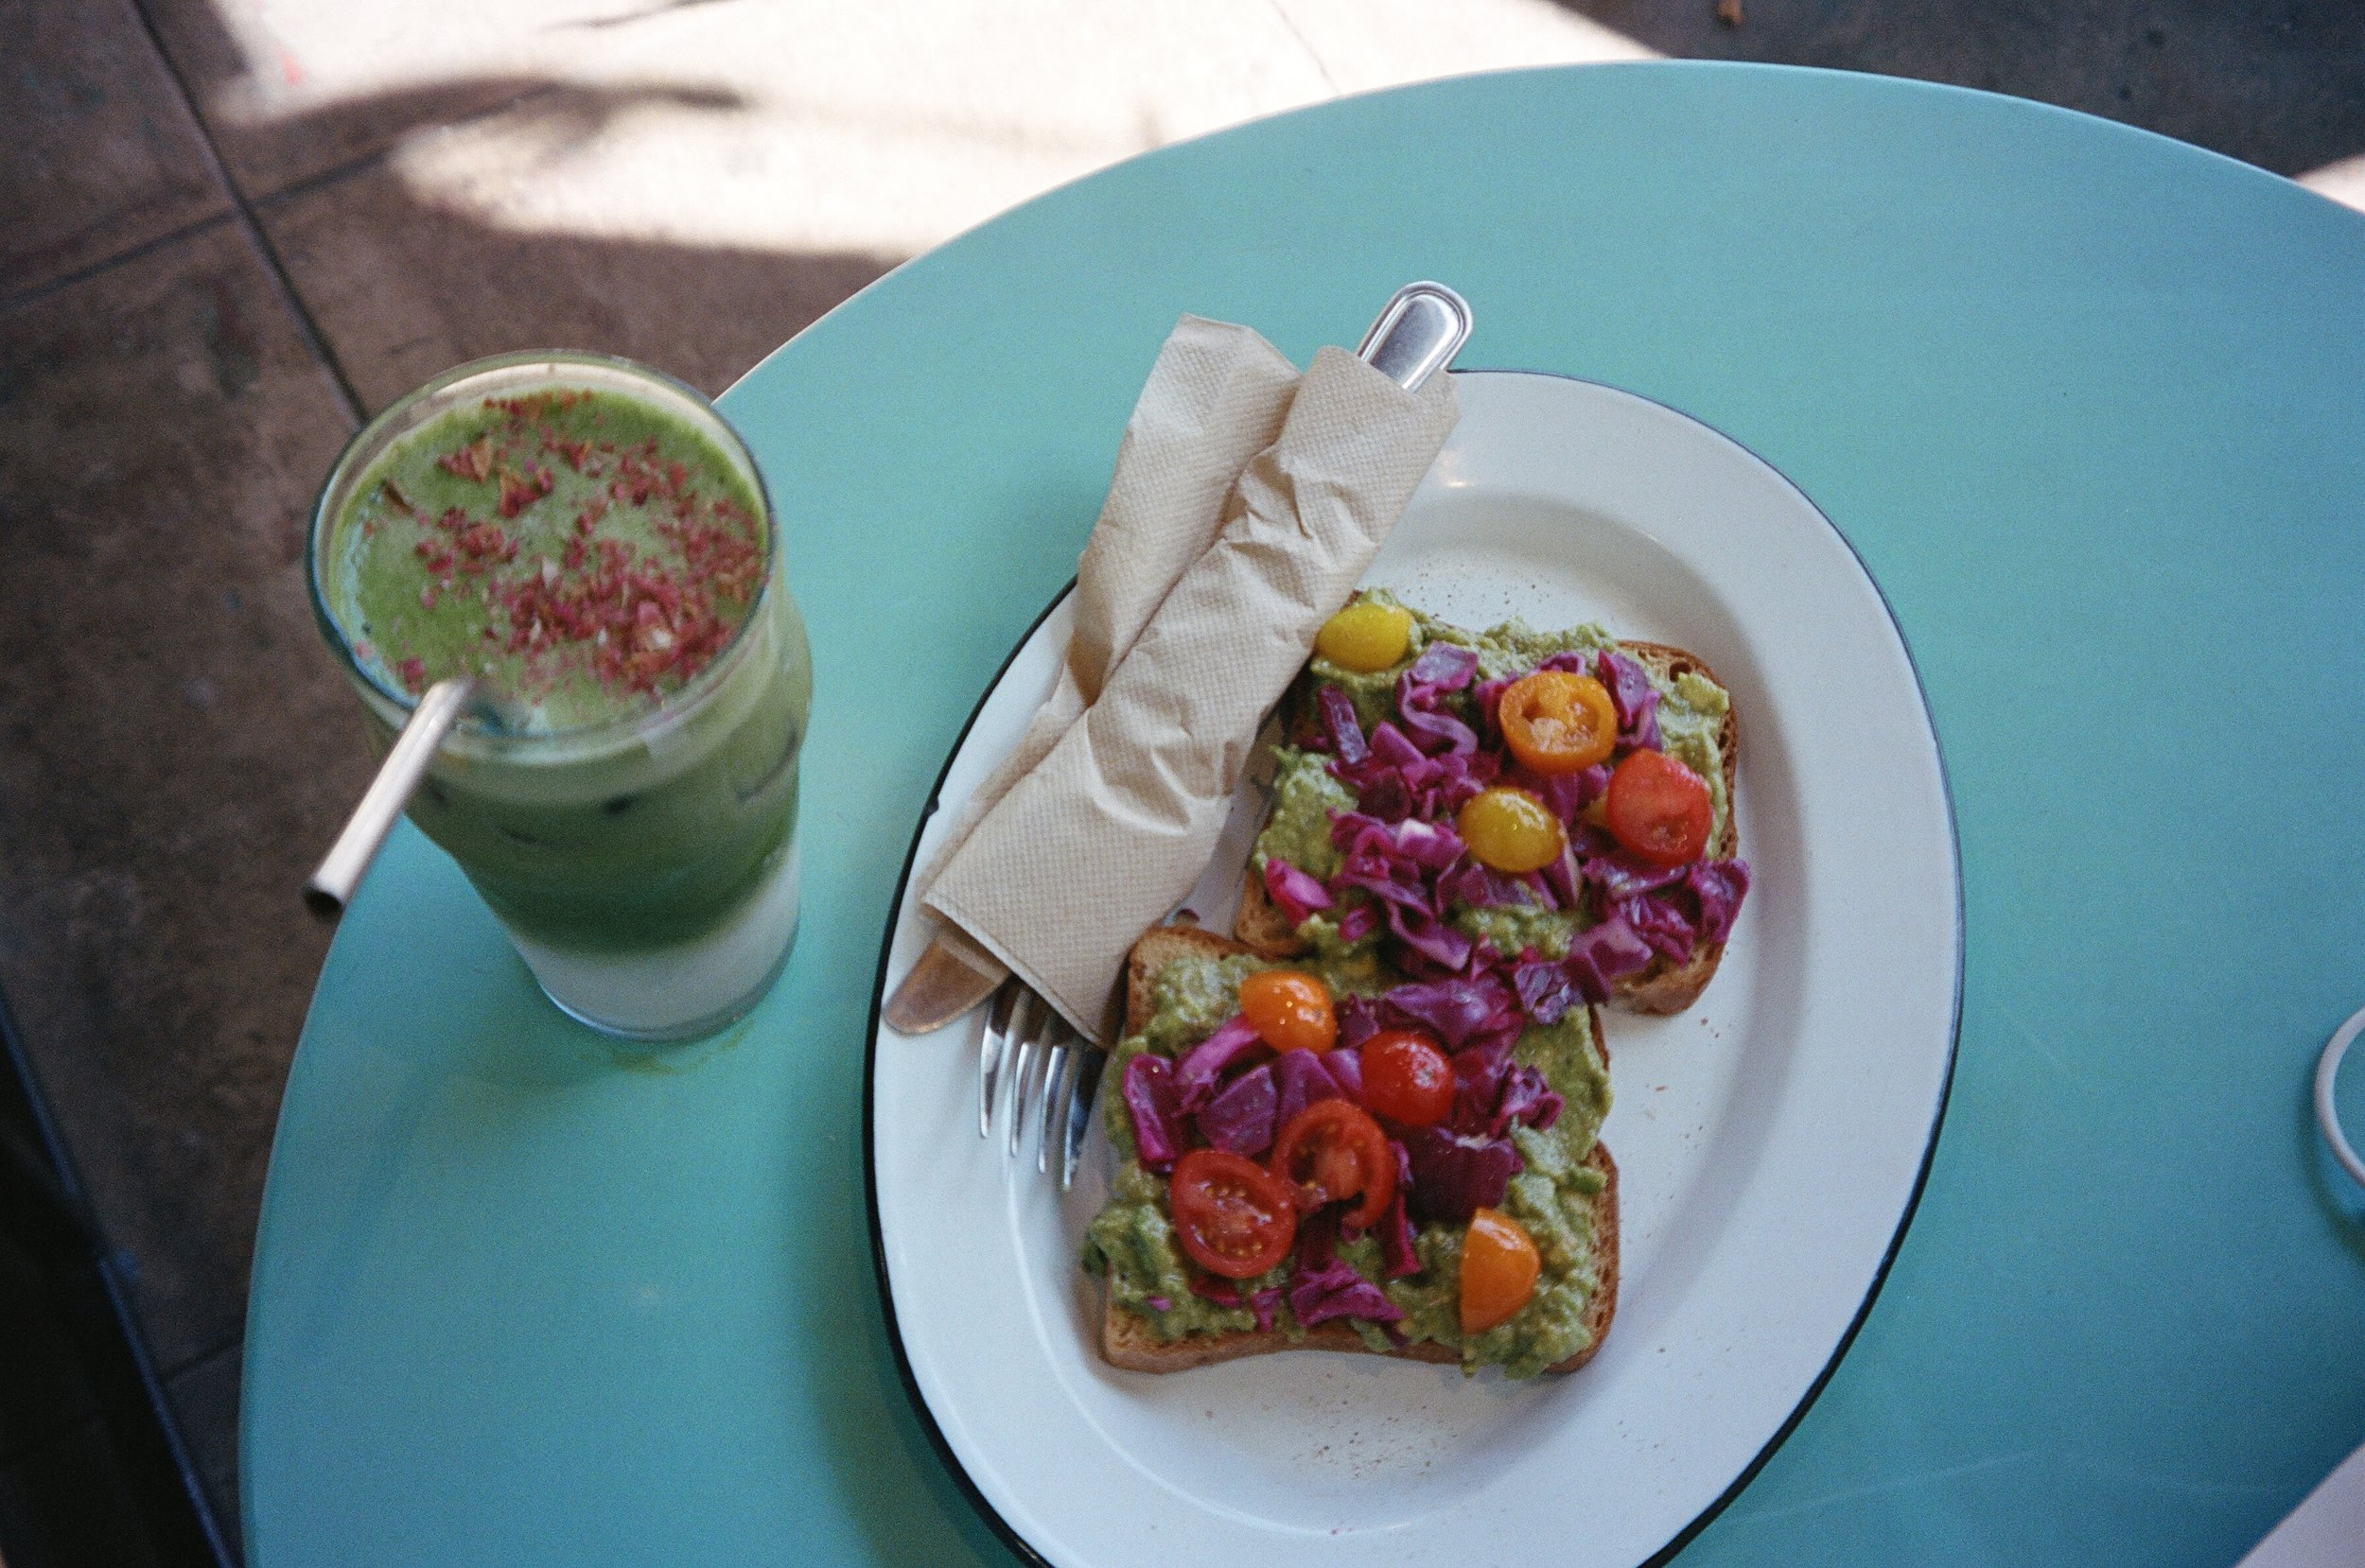 I often have a healthy brunch at Silverlake's MatchaBar, where I rack up member stars in order to eventually get a free drink. The rose matcha is my favourite.